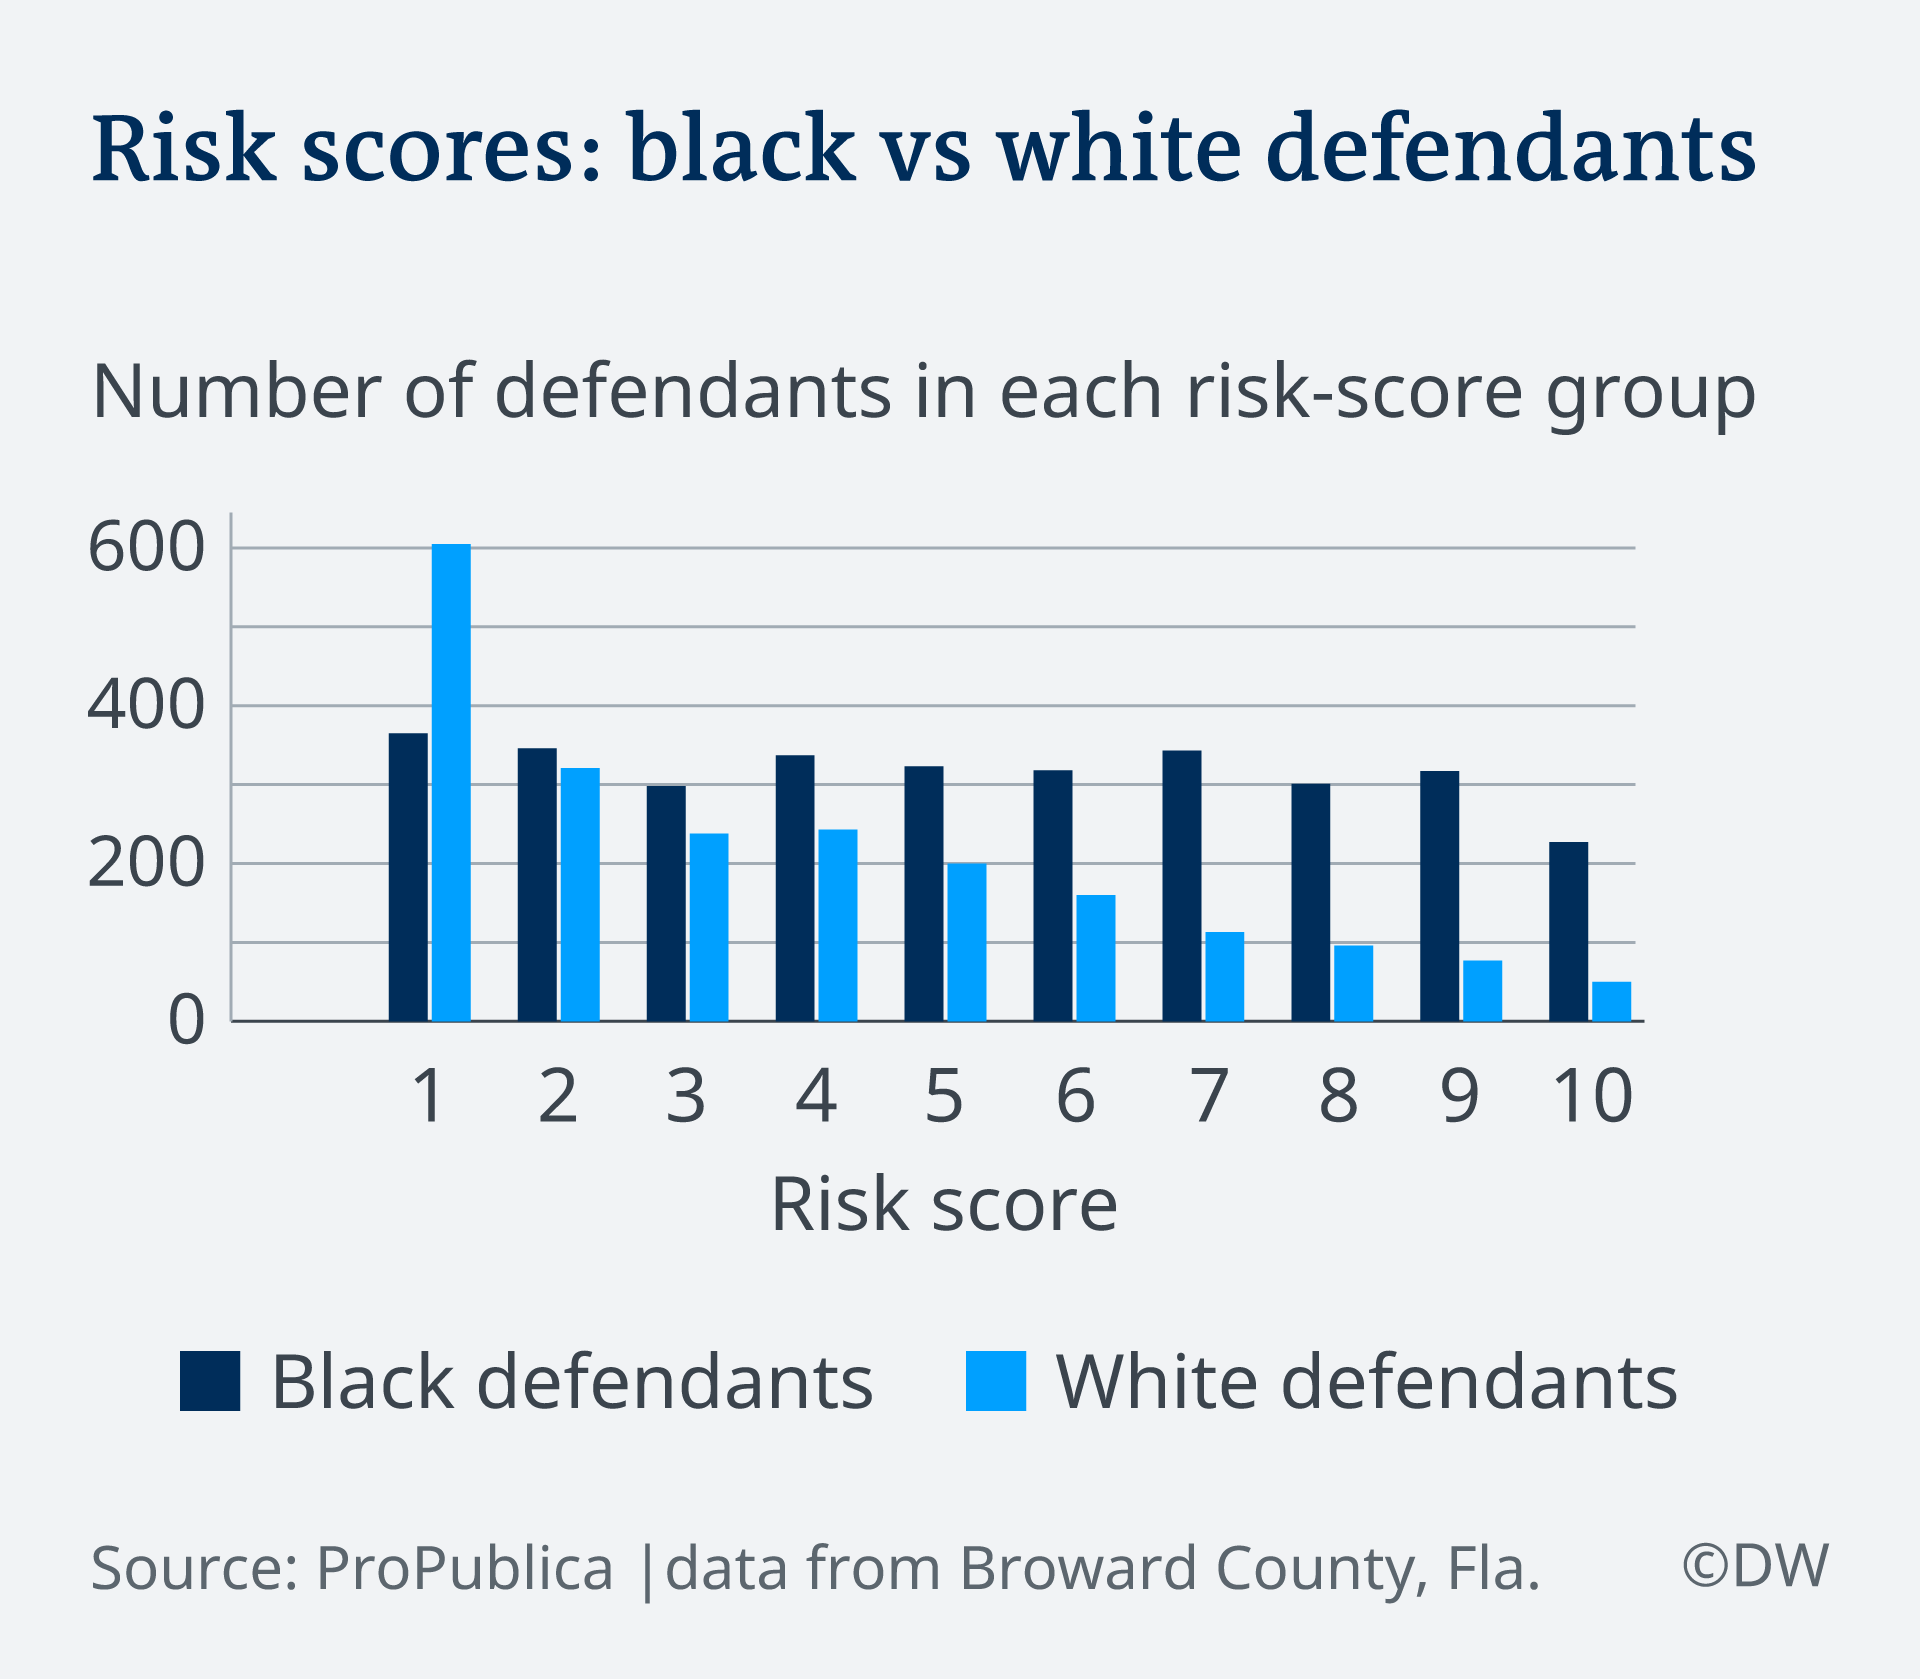 Infographic showing risk score difference between black and white defendants